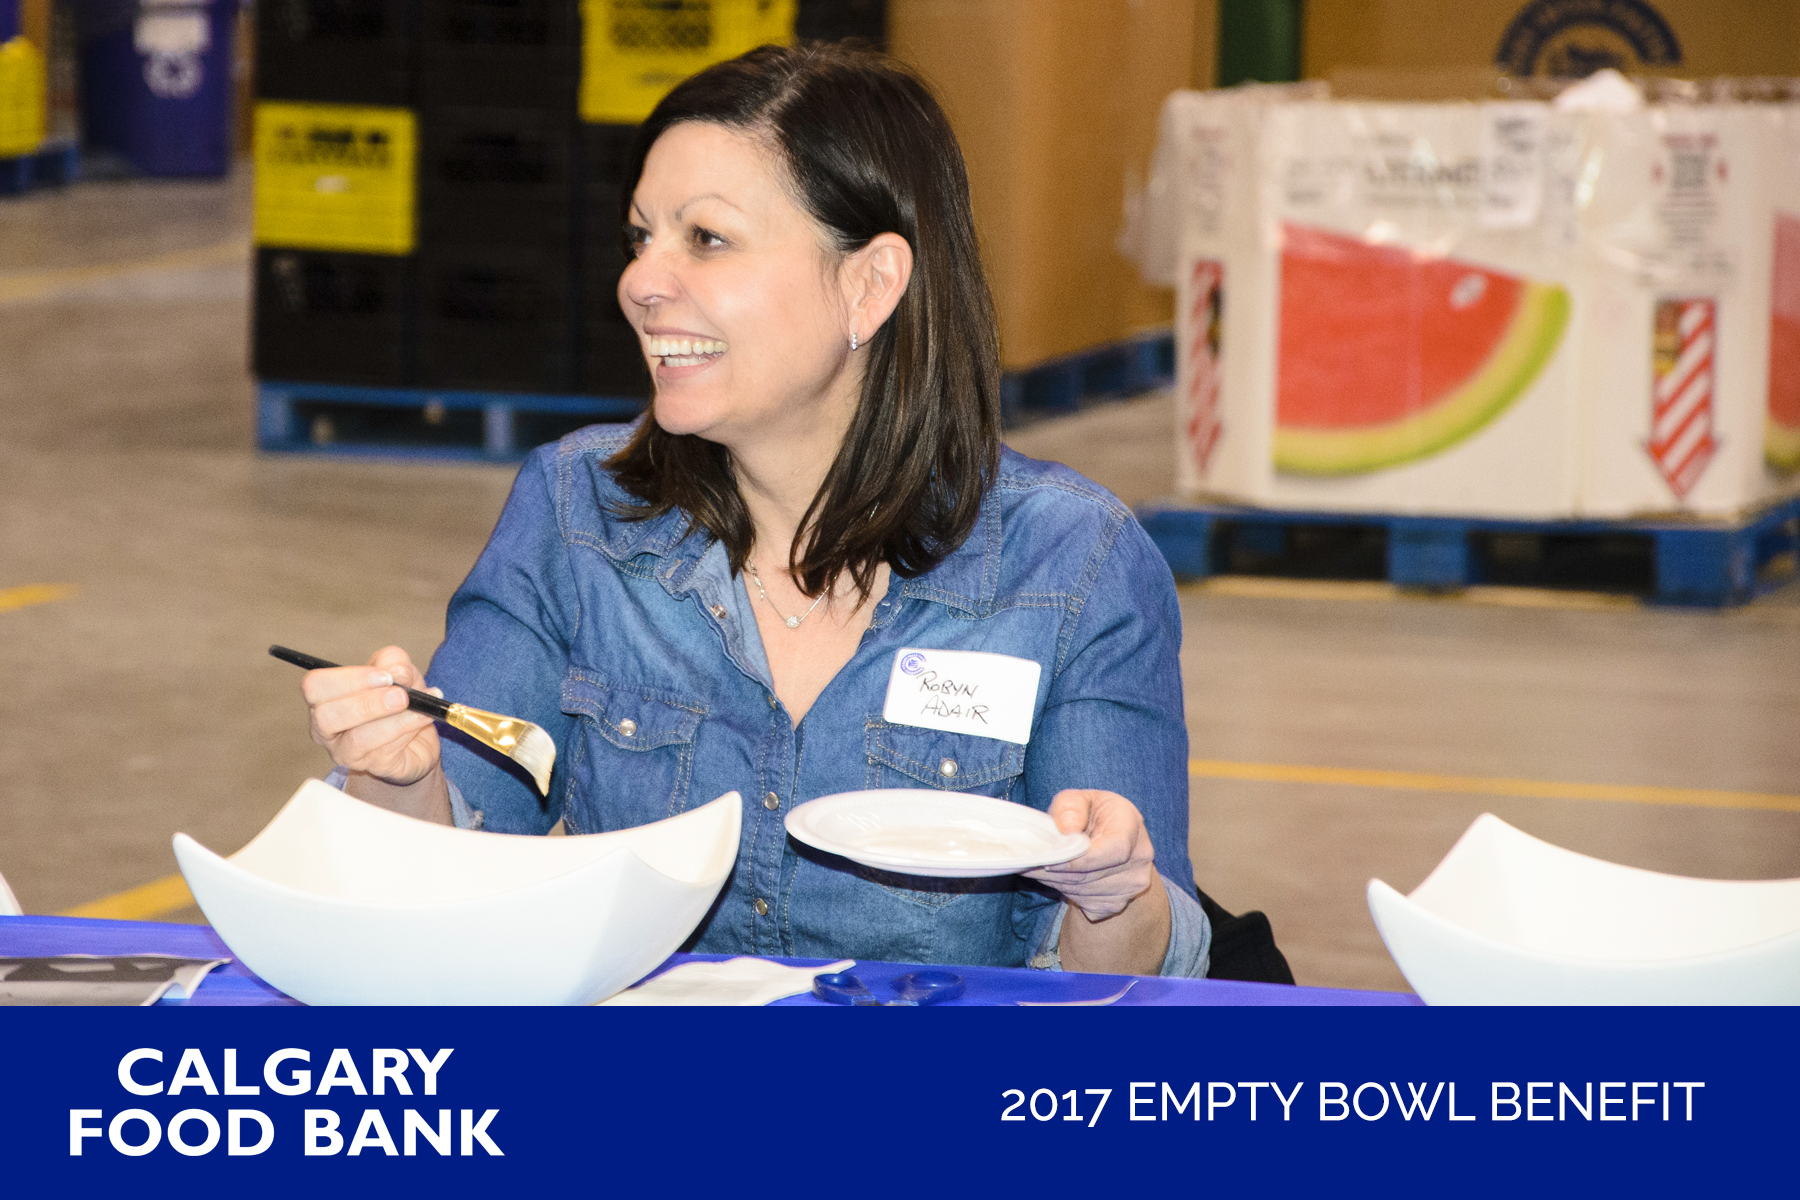 2017 Empty Bowl Benefit Paint Day